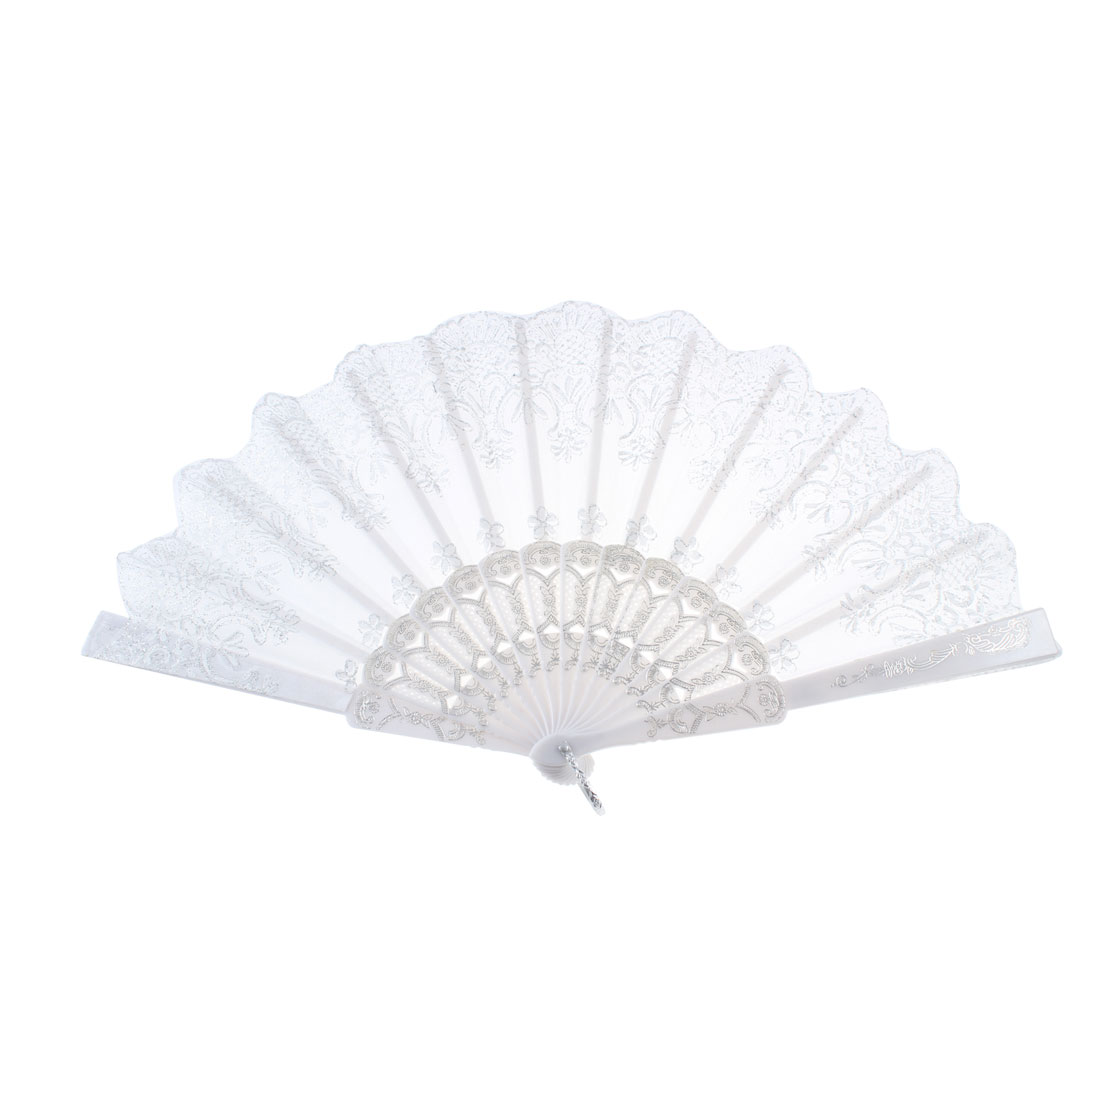 Flower Print Glittery Powder Decor Foldable Handheld Fan White for Women